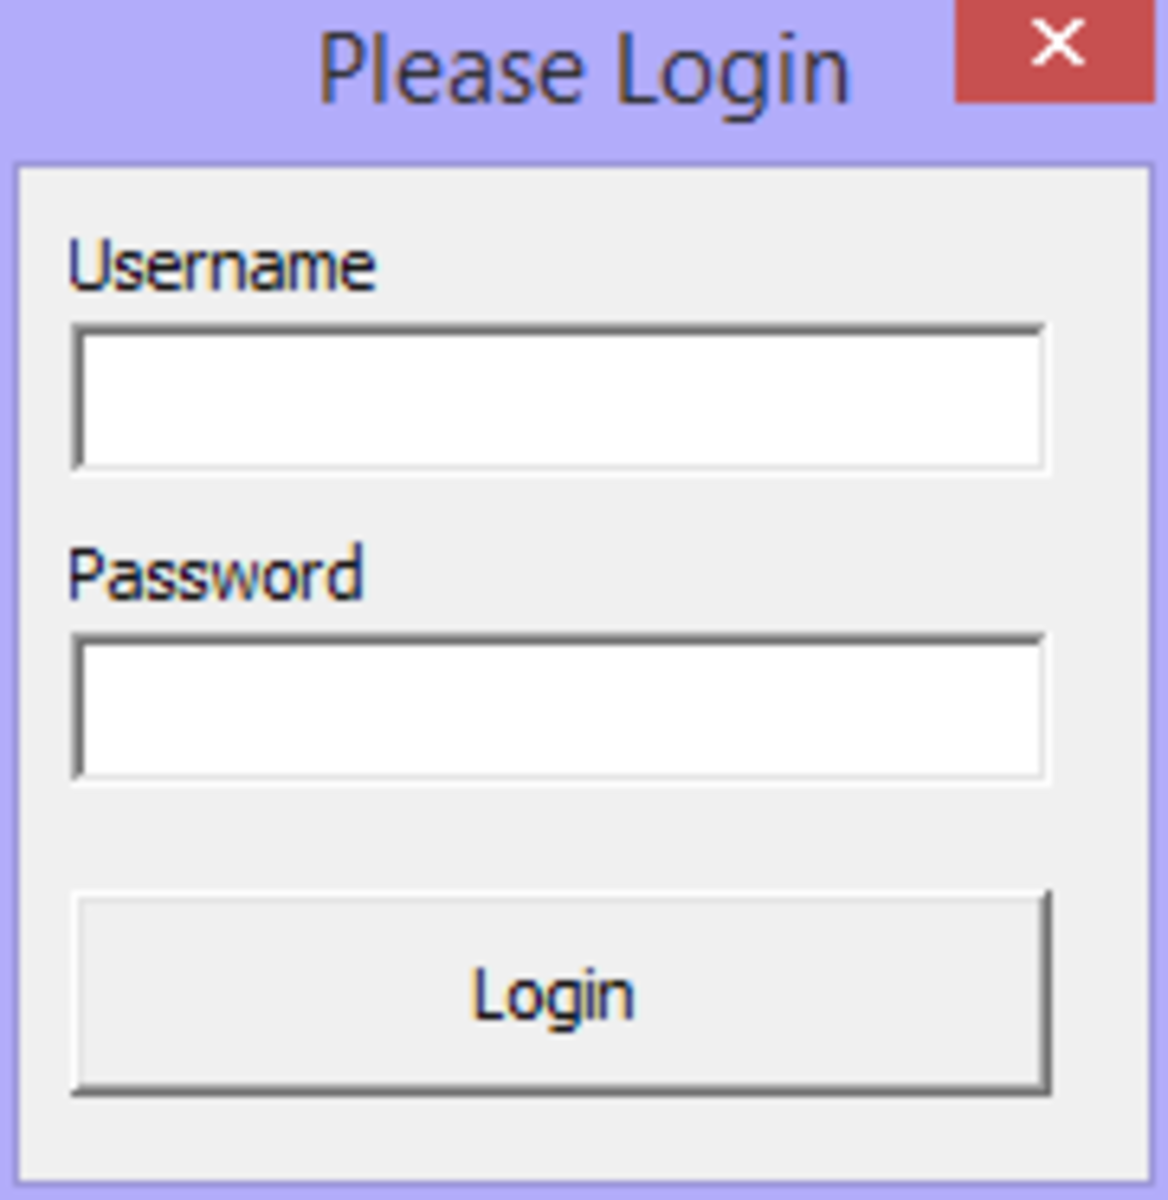 Excel VBA - Guide To Create A Login Form | TurboFuture